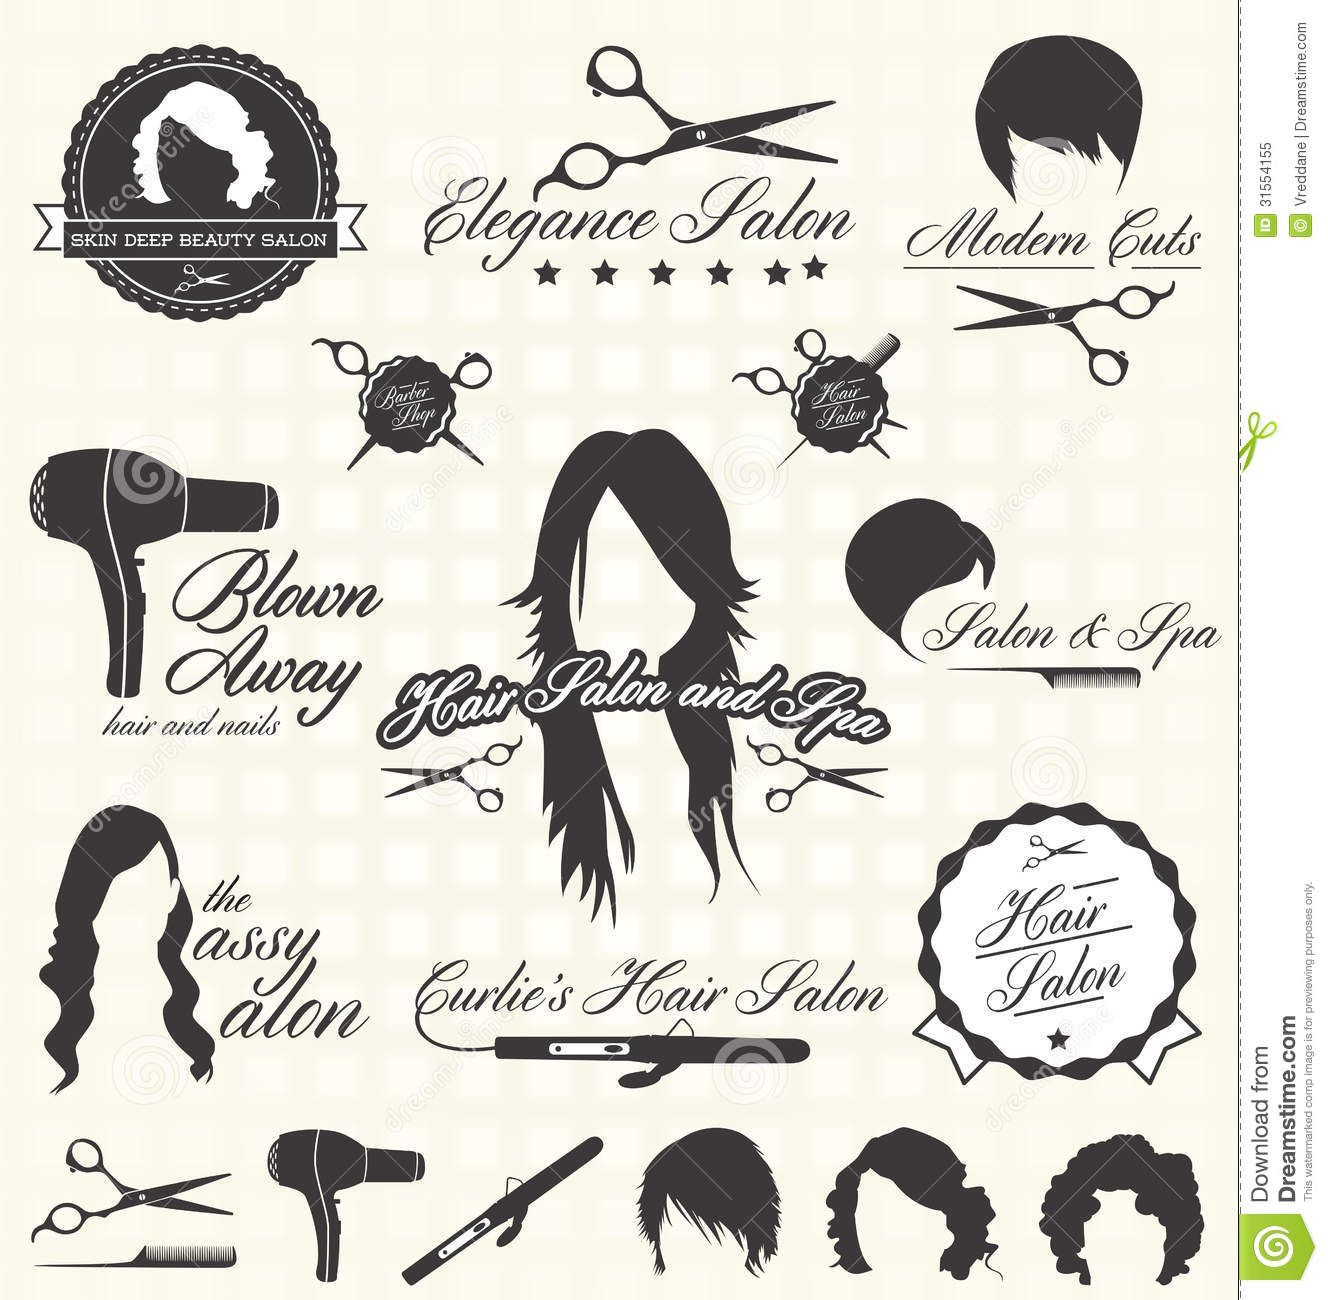 hairdresser graphics Google Search Hair salon, Salons